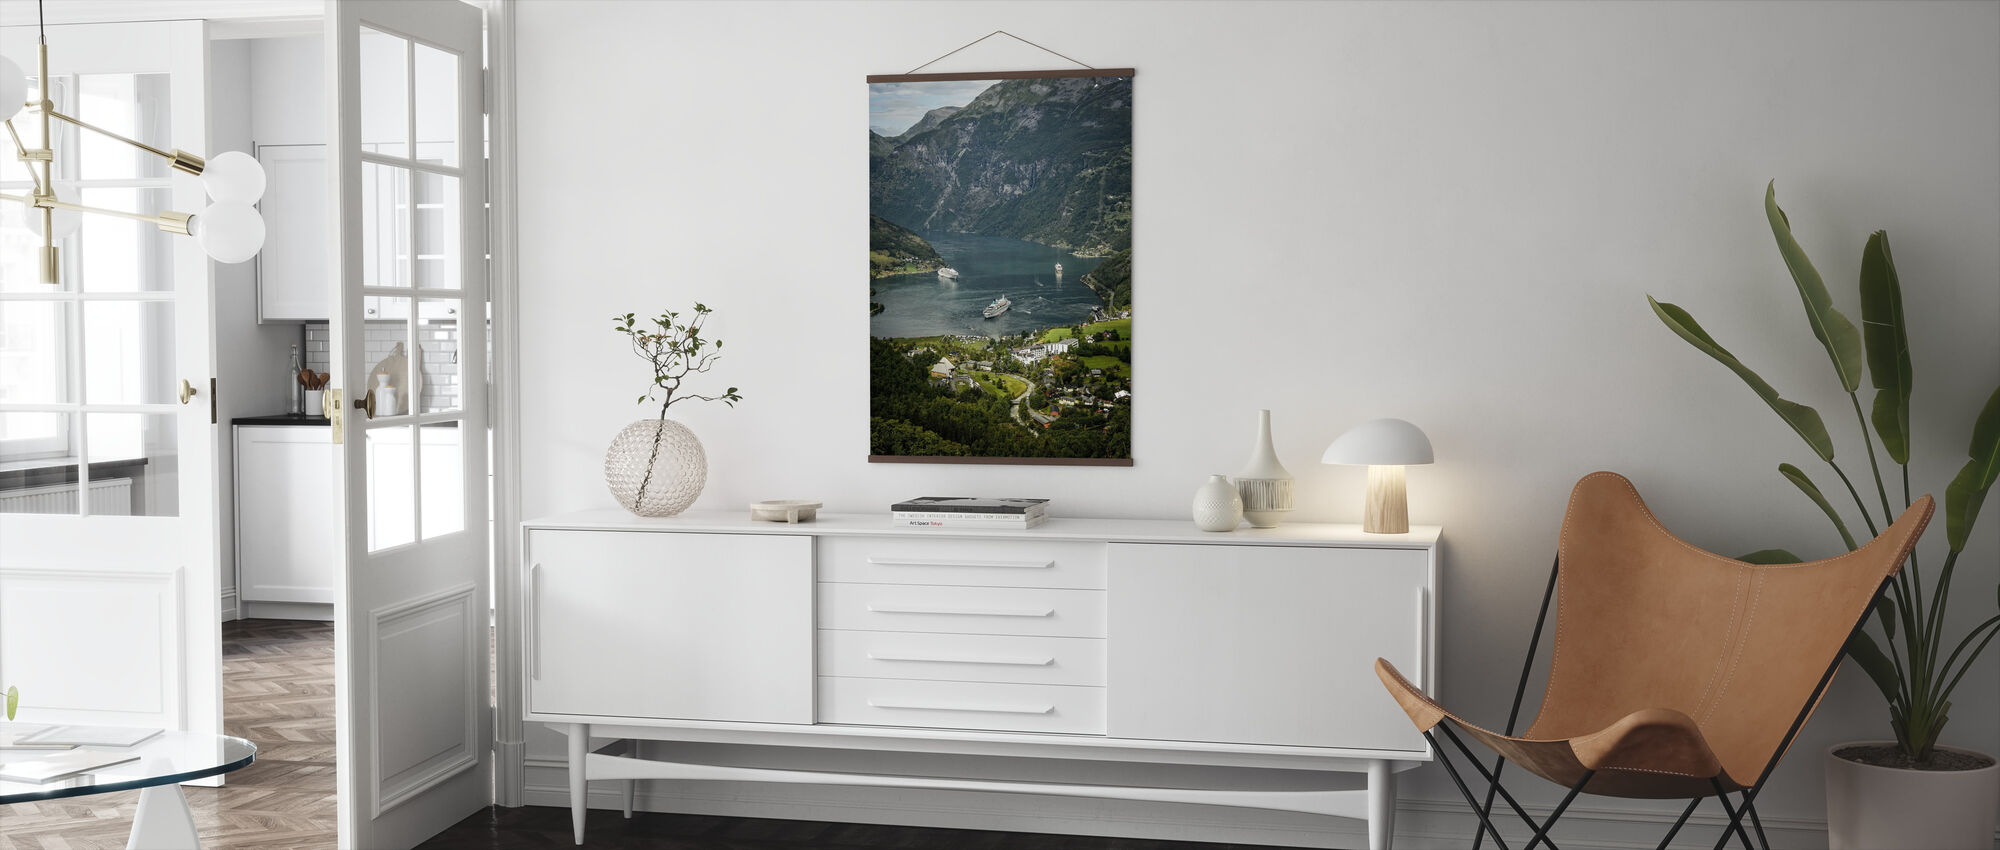 Boats in Geirangerfjord, Norway - Poster - Living Room